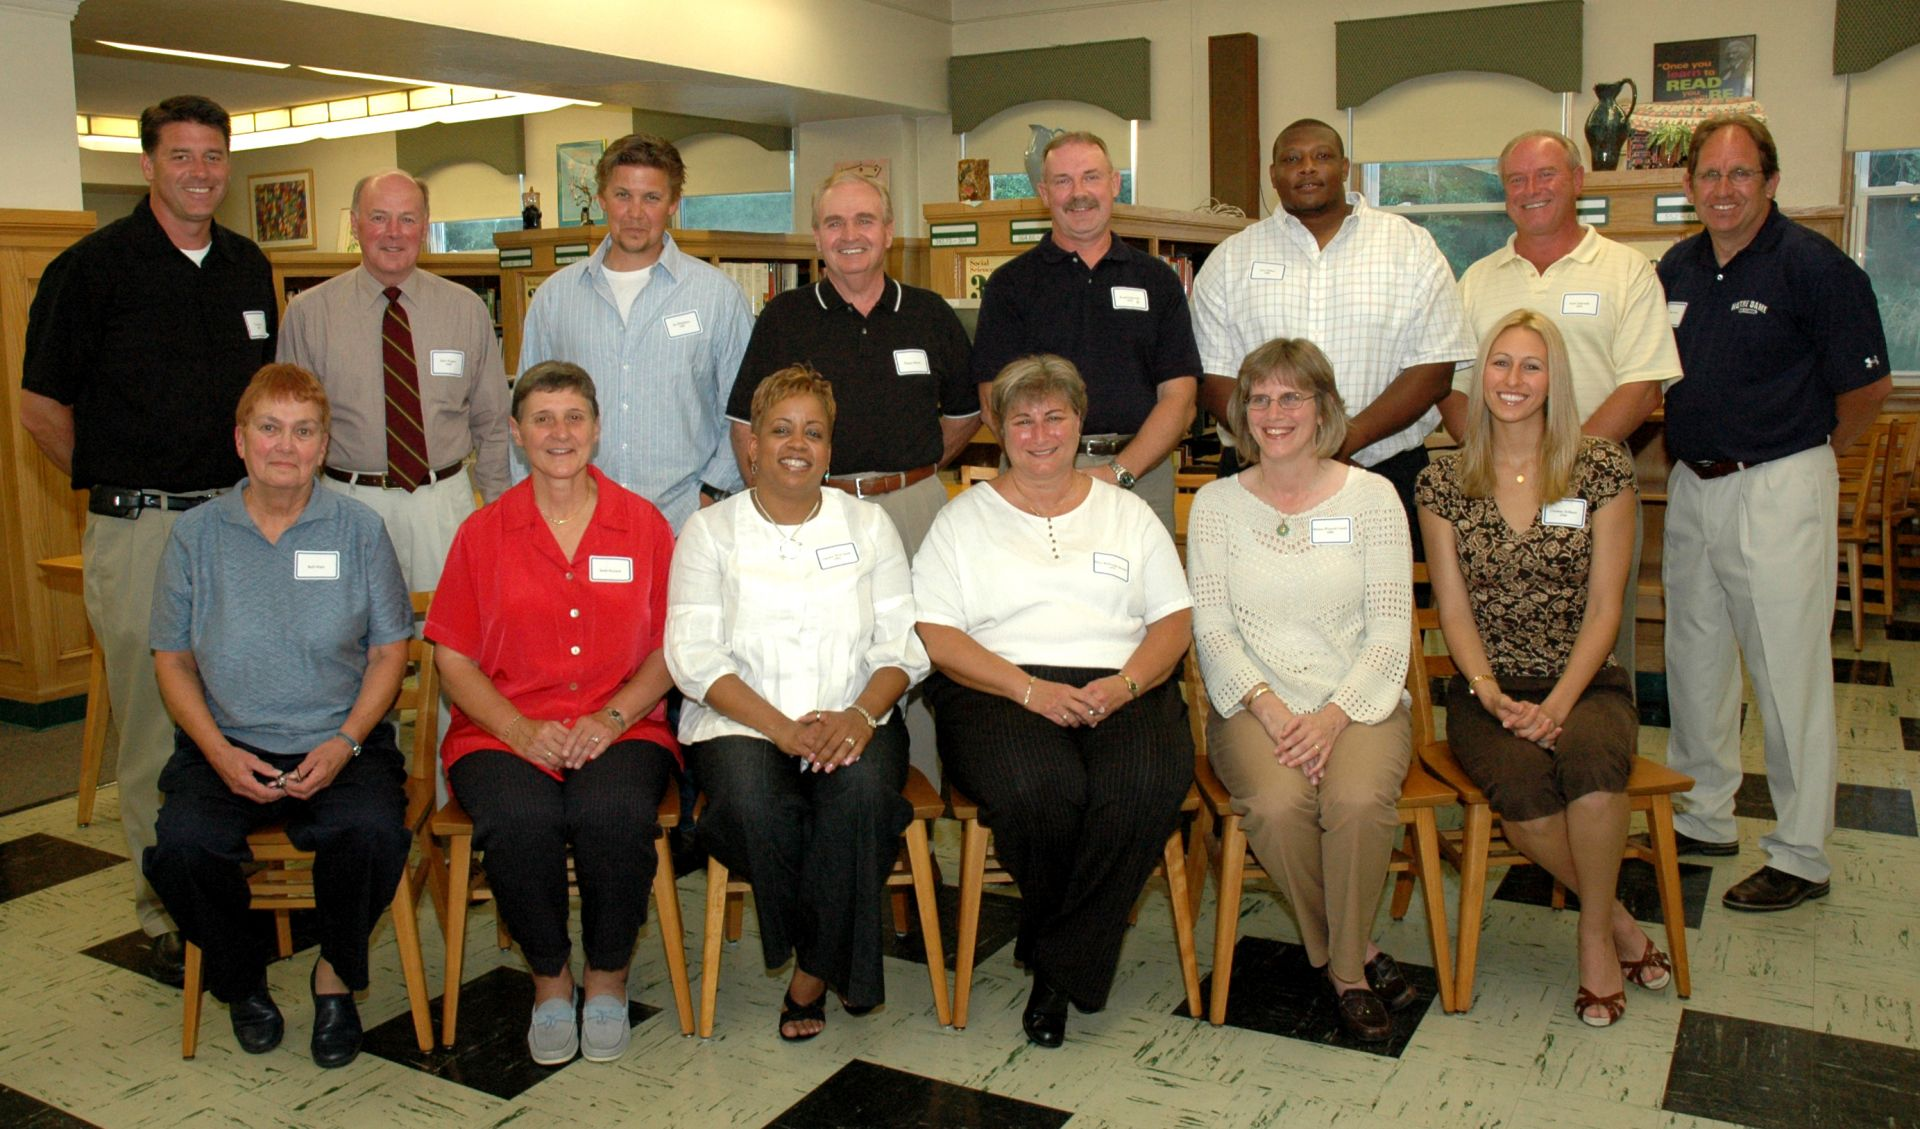 2008 Honorees                                                Front: Barb Major, Sandy Koschek, Charisse Smith, Maria Kearns, Melissa Gurick, Christine Williams Back: Tom Keefe, John Wagner, Jim Hutchison, Chappy Moore, Larry Zukowski, Jeremiah Wilson, Ron Zukowski, Mike Perone